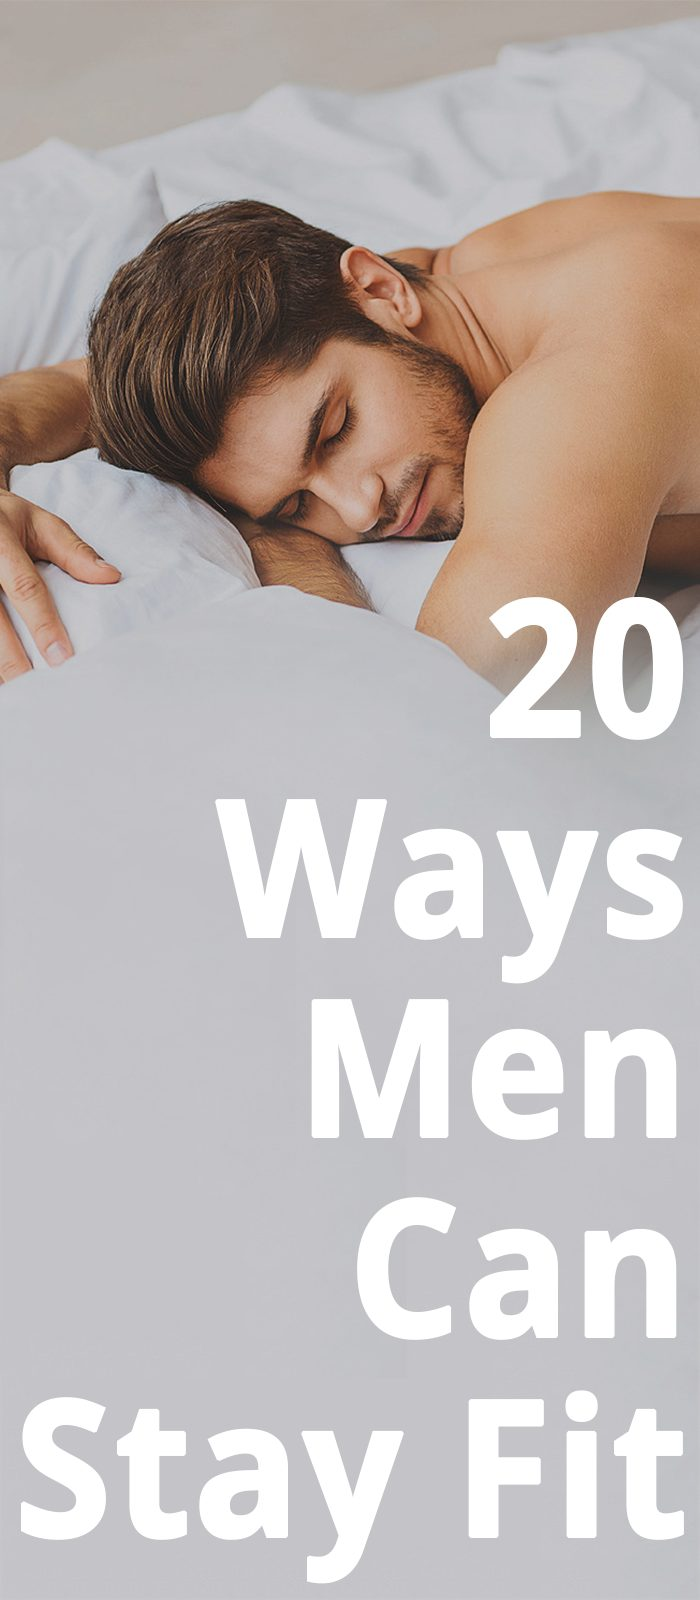 20 Ways Men Can Stay Fit!